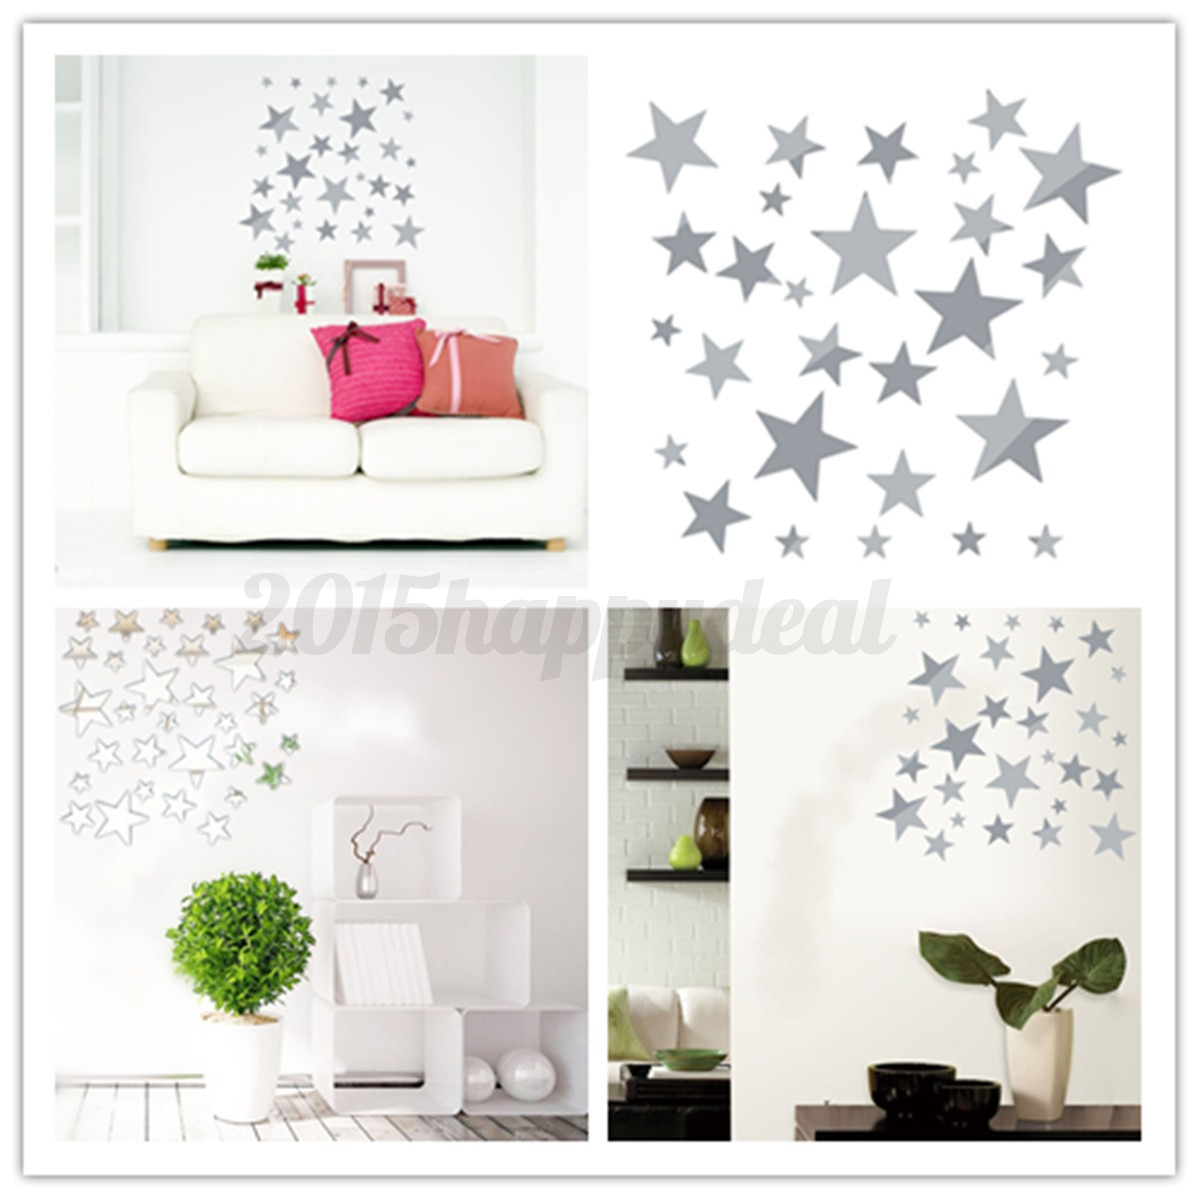 Fashion star mirror diy wall ceiling home decal mural for Diy wall photo mural